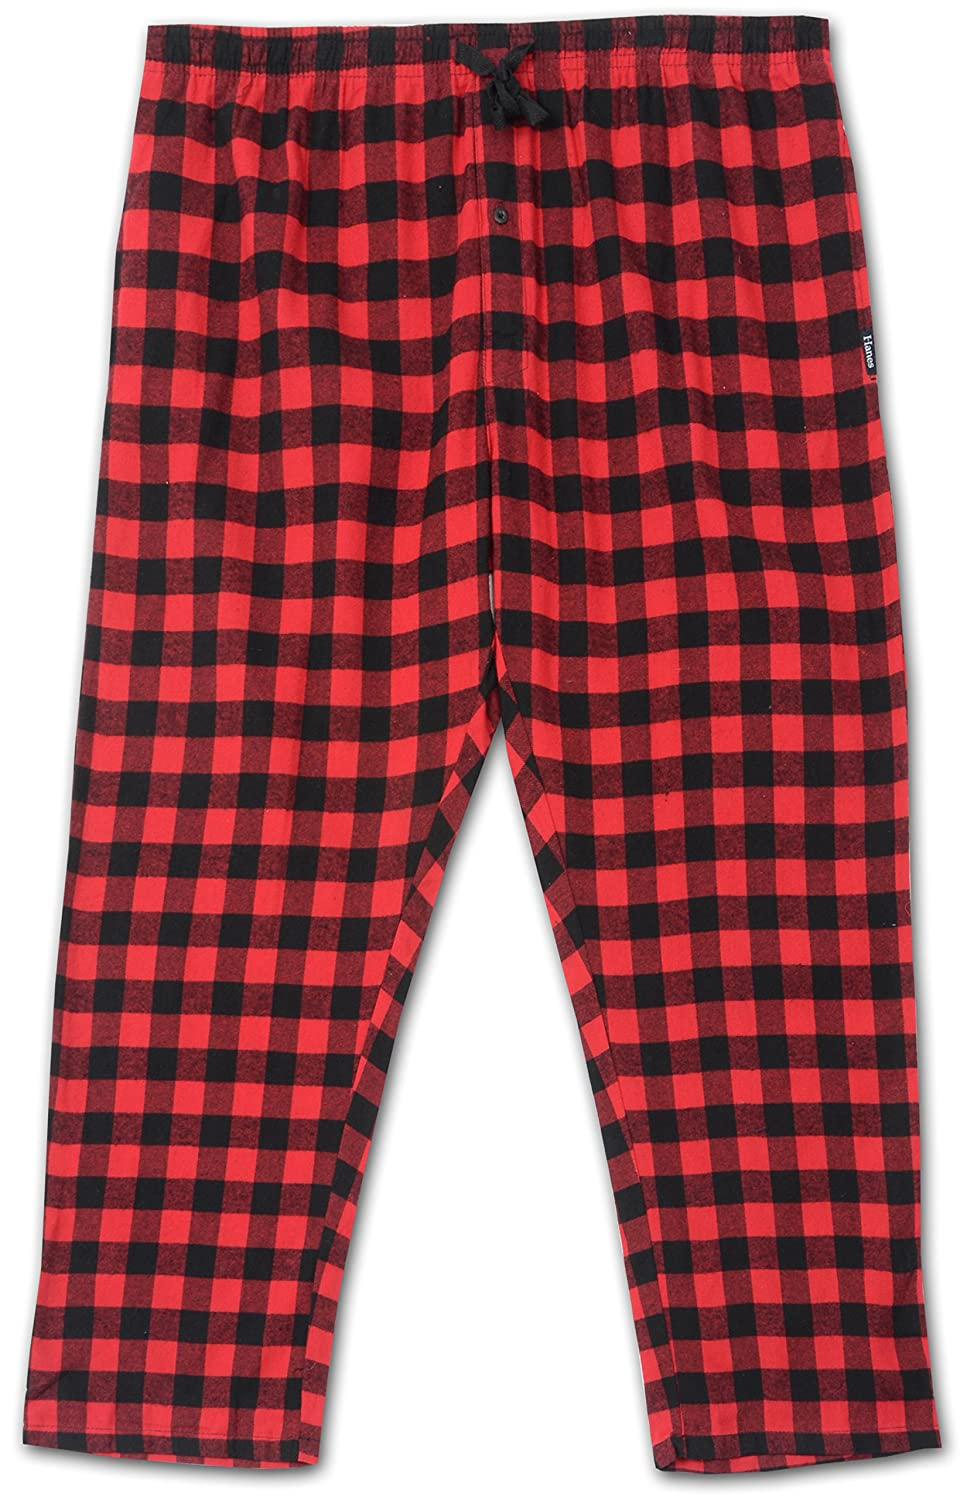 Hanes Big and Tall Flannel Lounge Pant